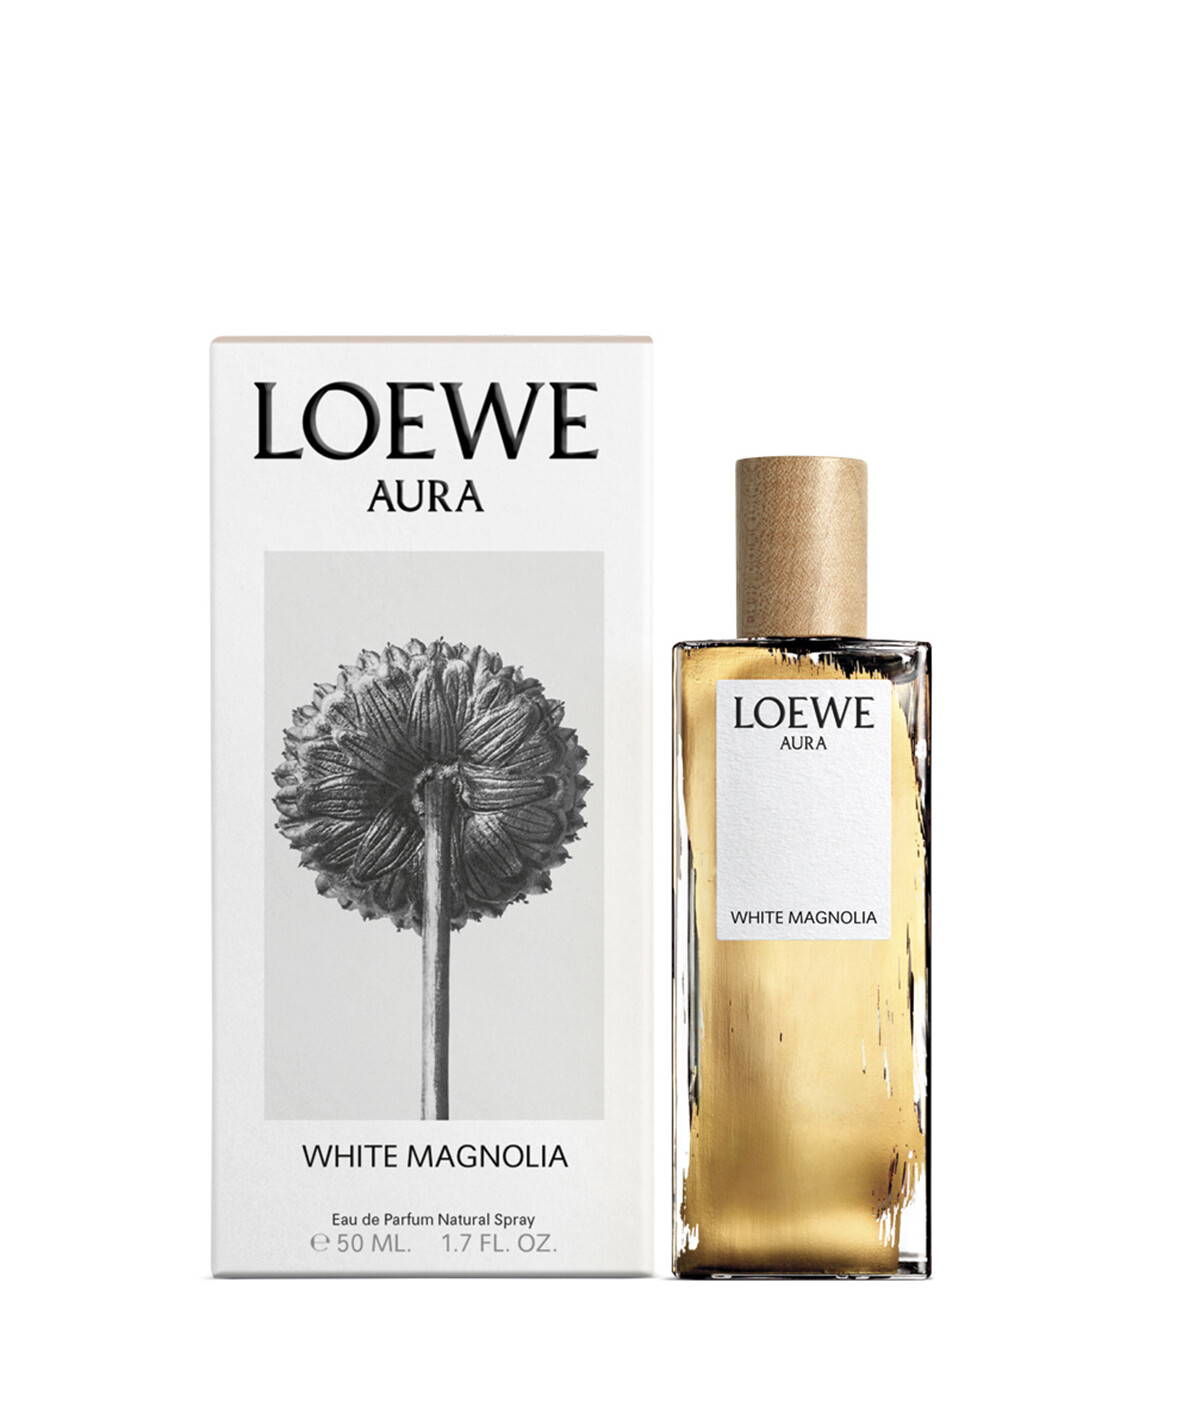 LOEWE Loewe Aura White Magnolia Edp 50Ml Colourless front